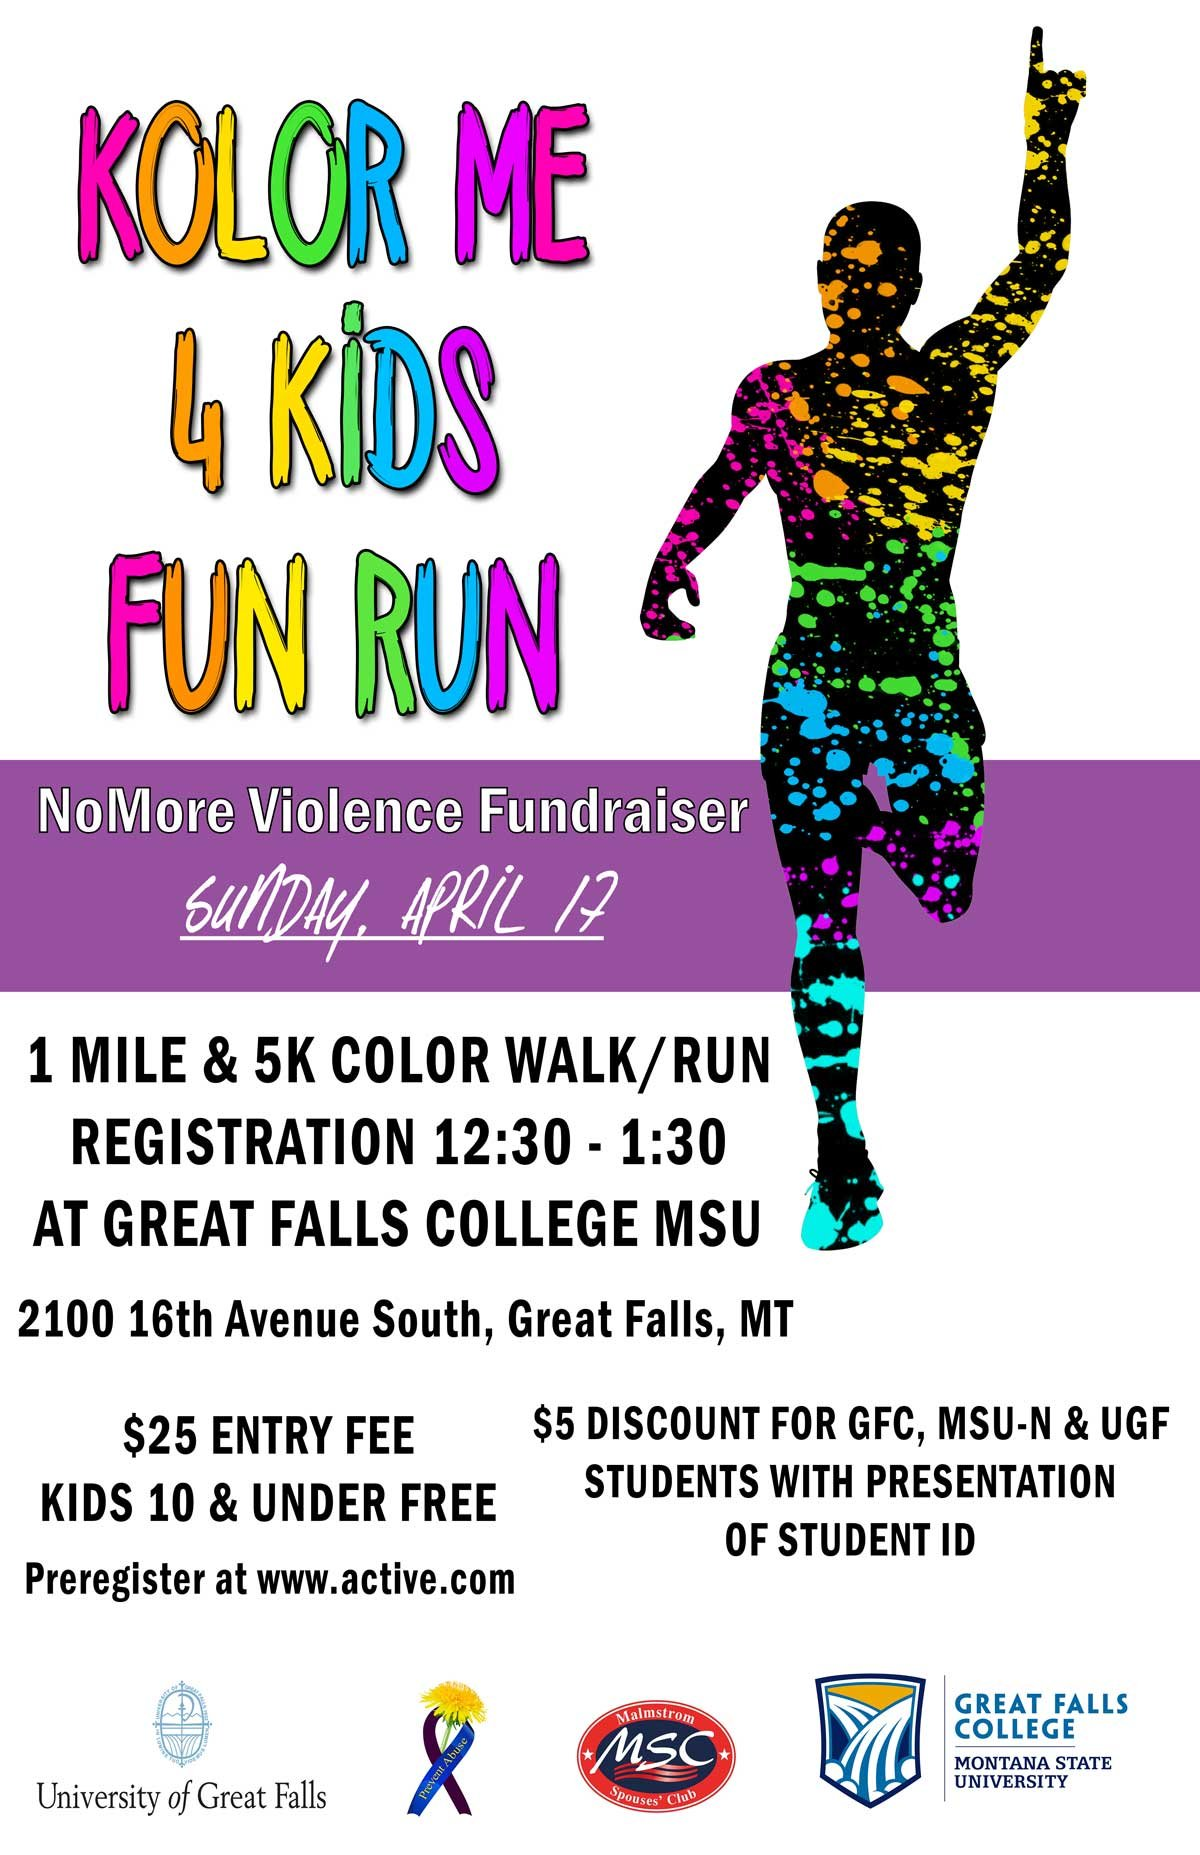 kolor me 4 kids fun run kfbb com news sports and weather